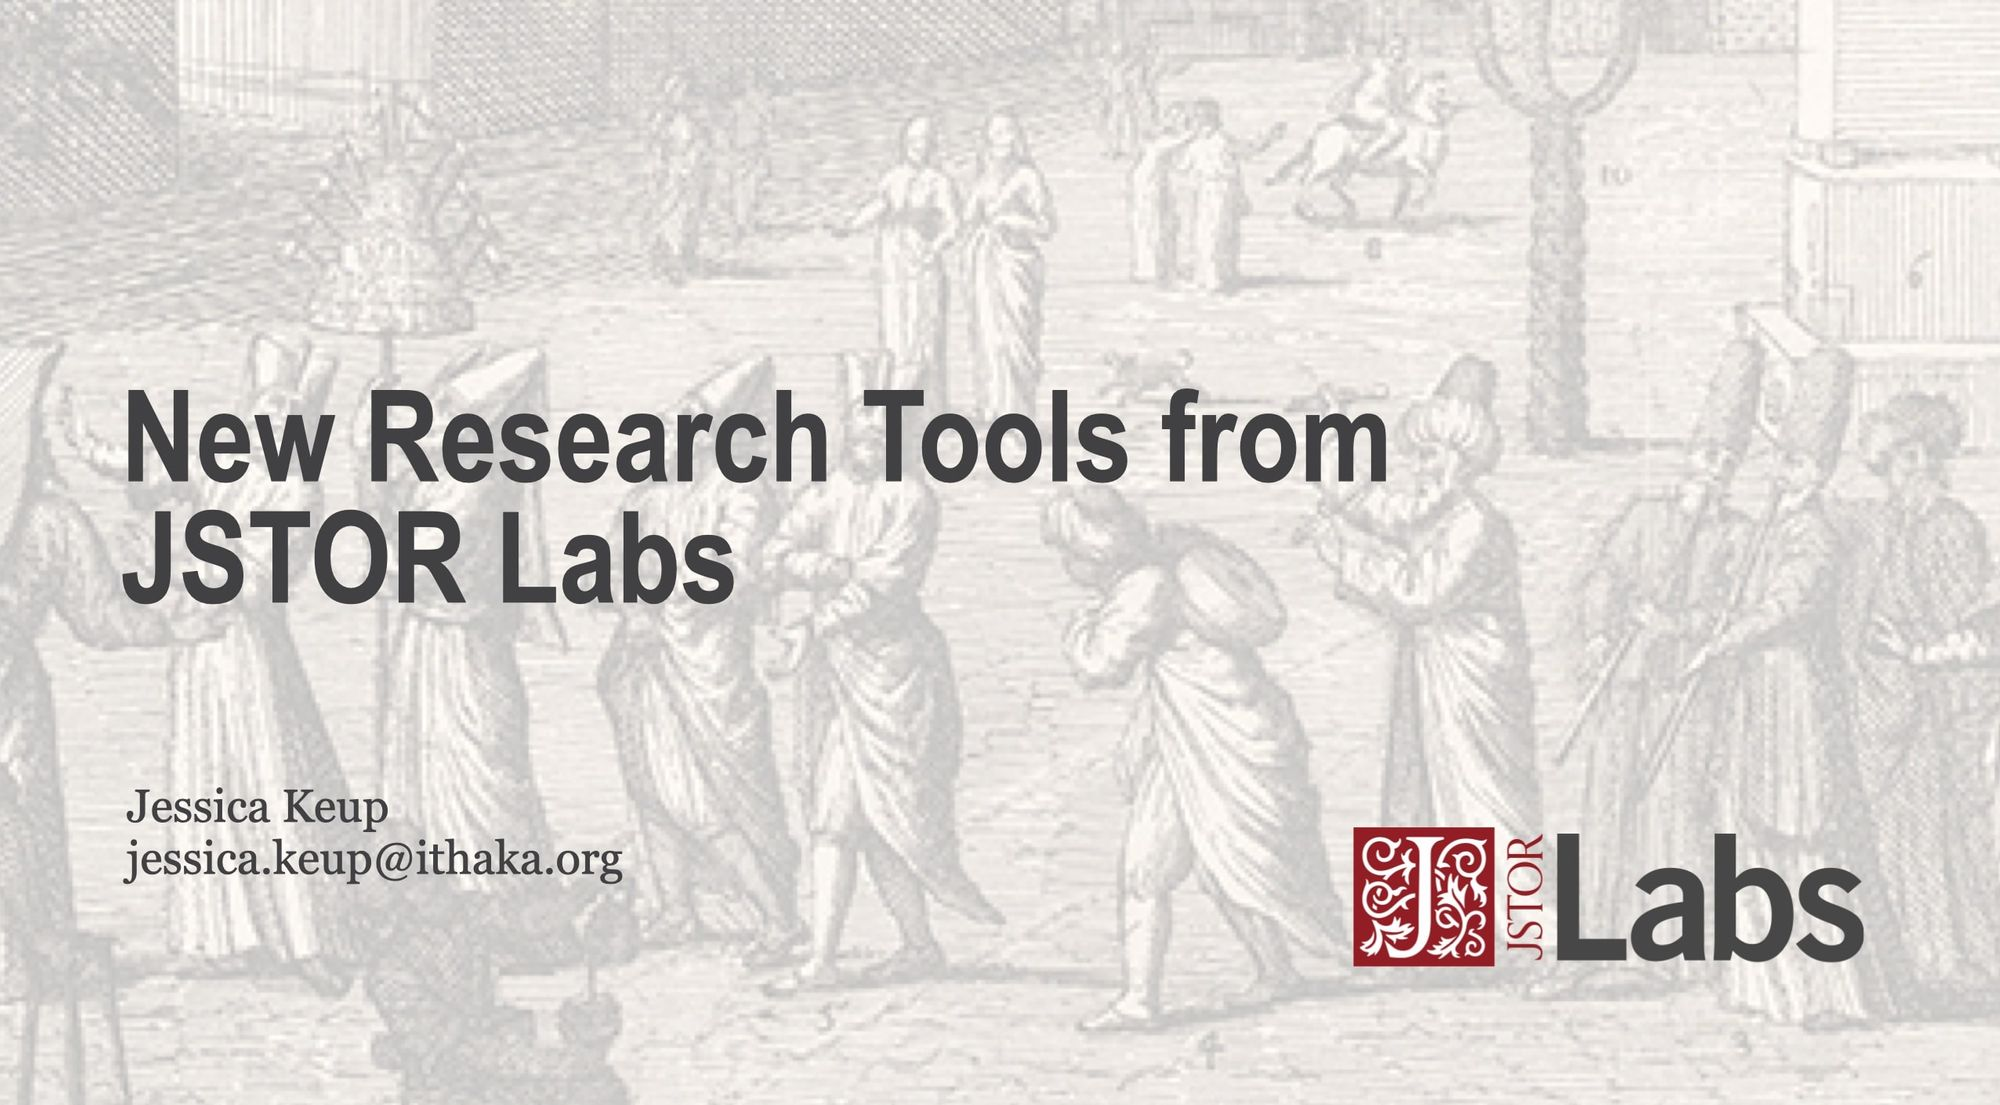 New Research Tools from JSTOR Labs